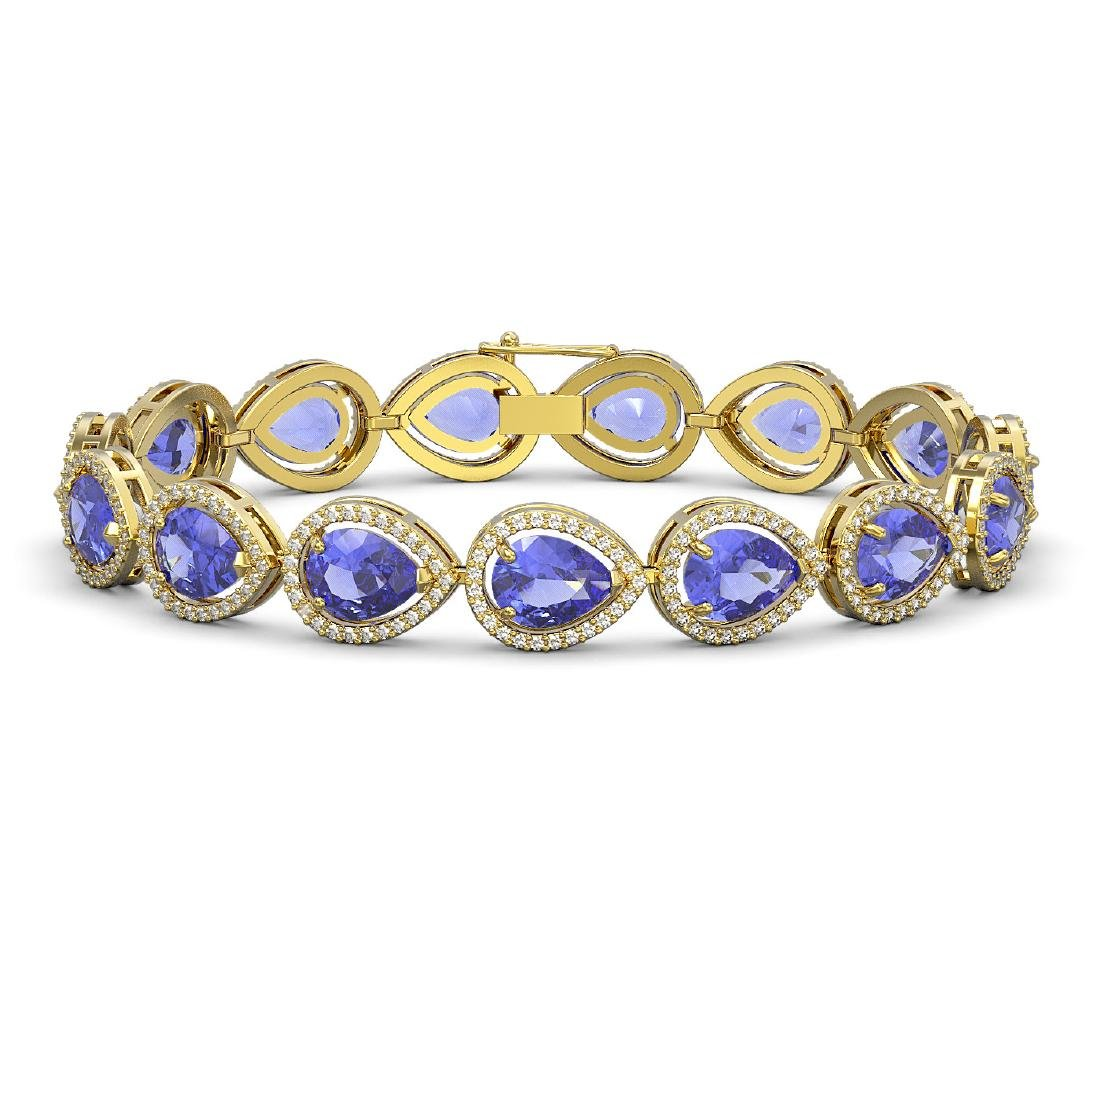 21.06 CTW Tanzanite & Diamond Halo Bracelet 10K Yellow